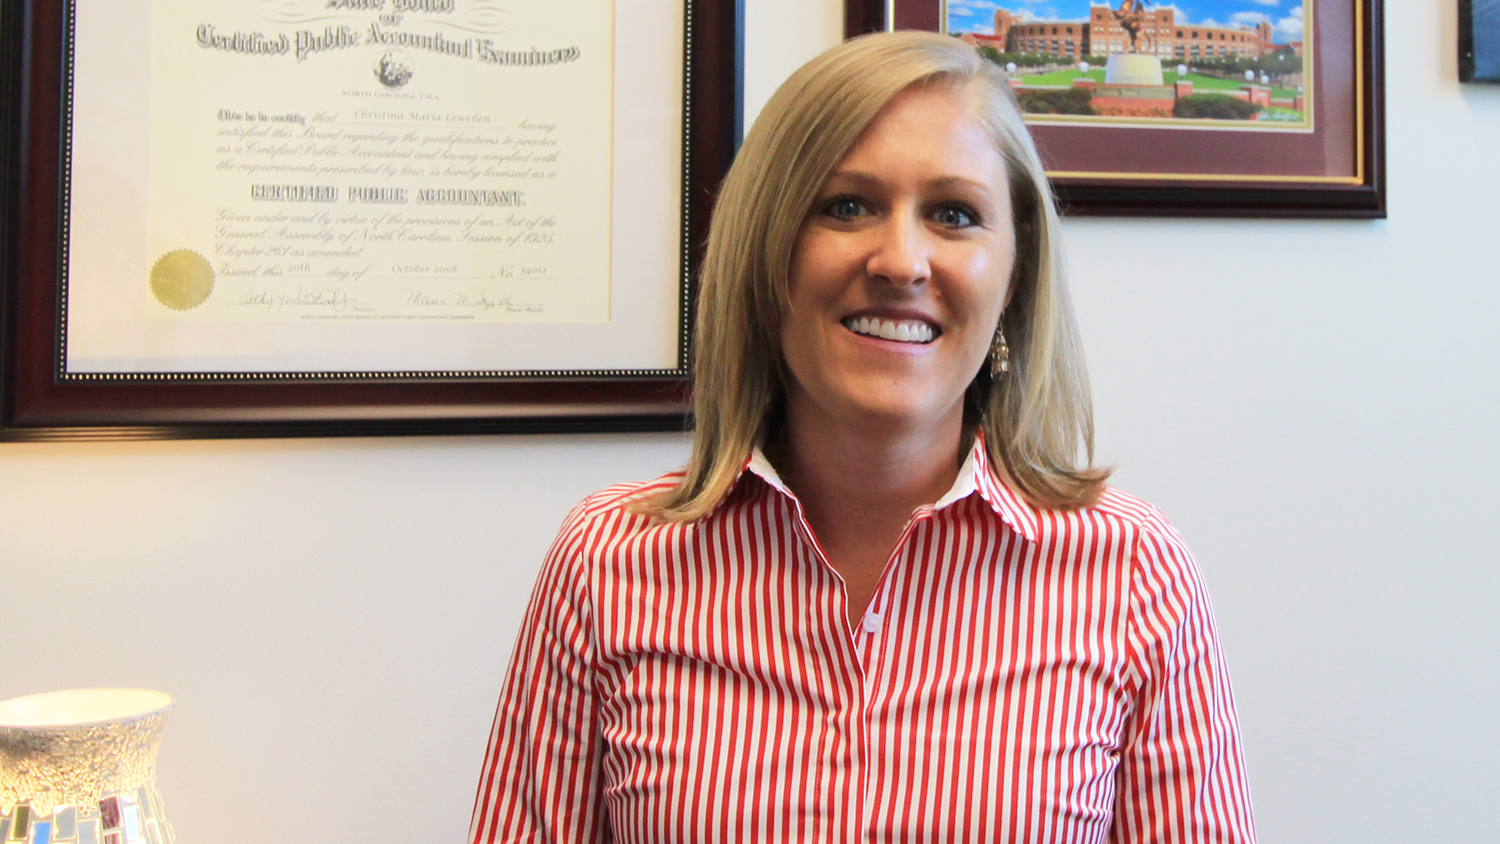 Photo of Christina Lewellen, assistant professor of accounting